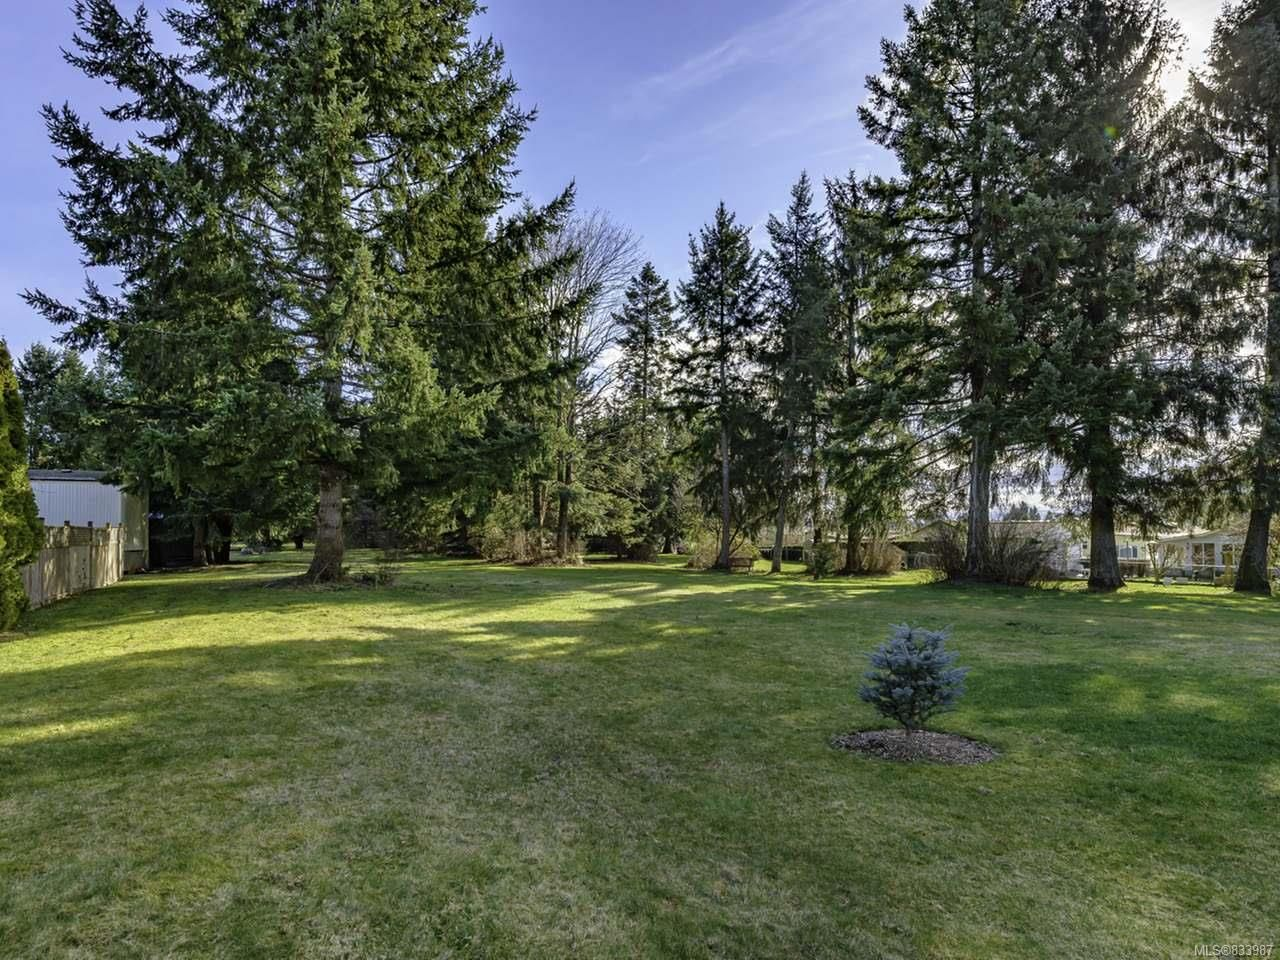 Photo 38: Photos: 64 390 Cowichan Ave in COURTENAY: CV Courtenay East Manufactured Home for sale (Comox Valley)  : MLS®# 833987